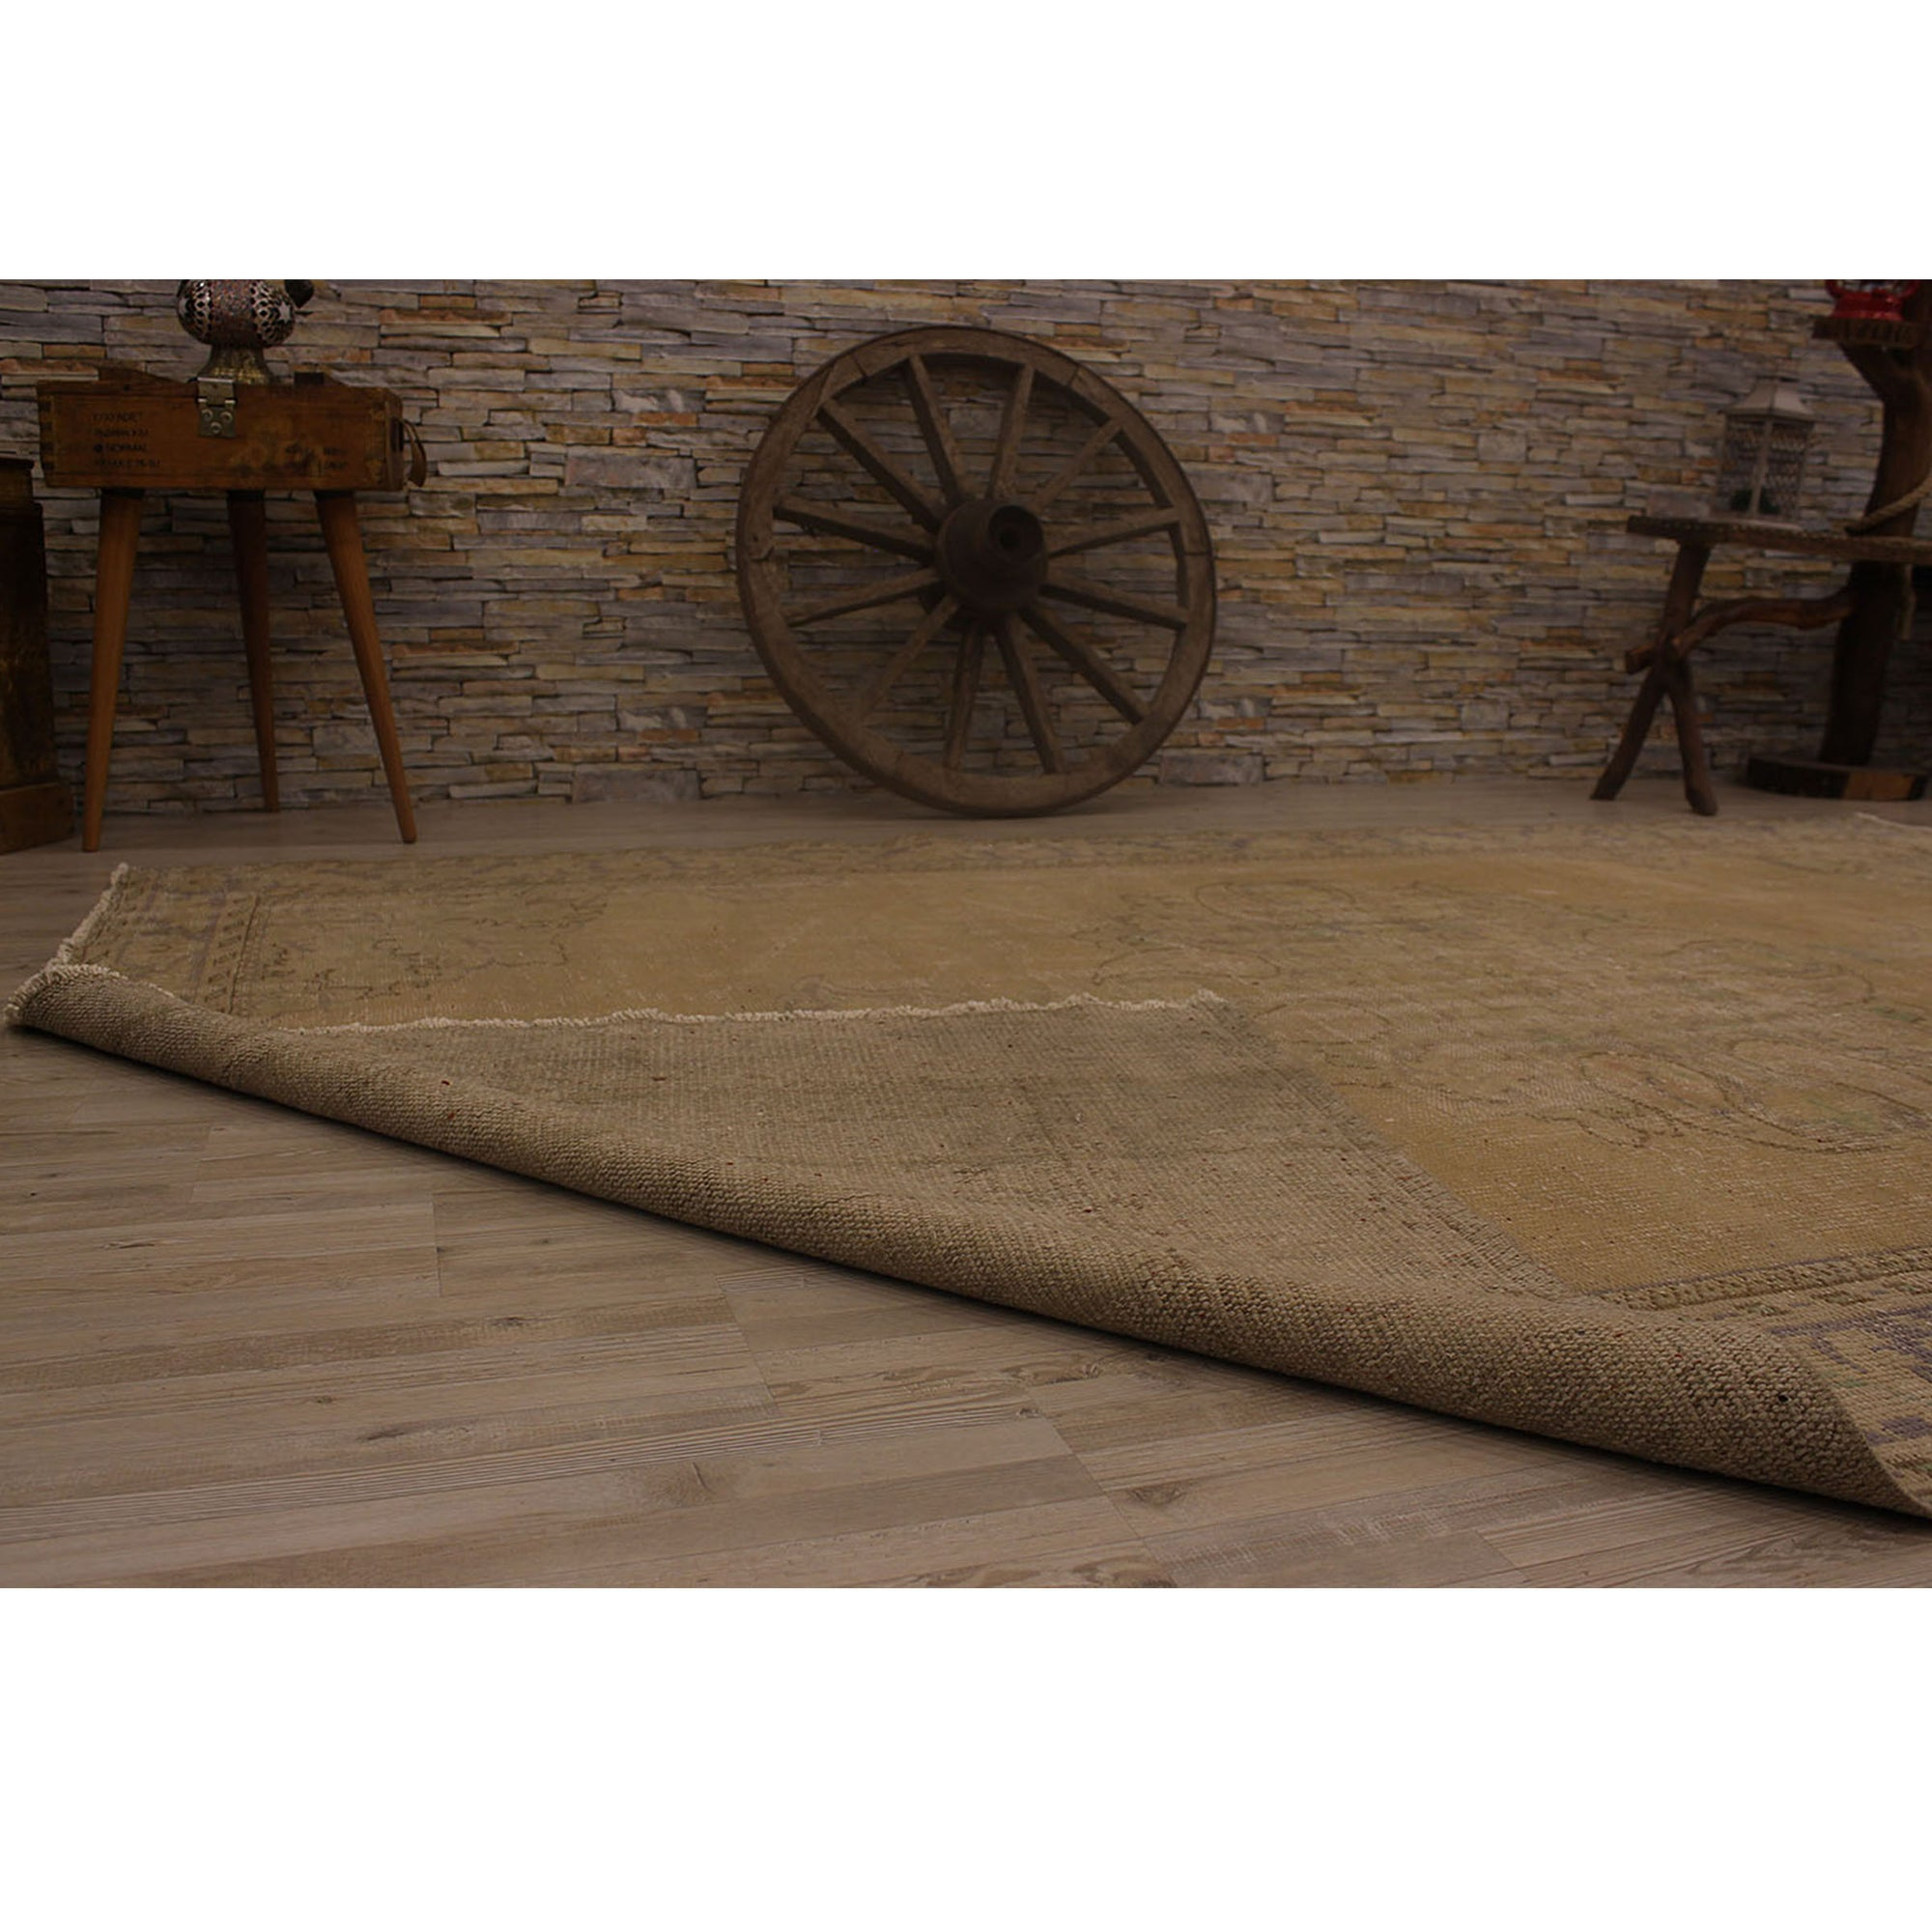 195 X 285 Anatolian Hand Knotted Carpet Vintage Style 60N2357 -  195 × 285 سجادة أناضولية معقودة يدويًا - Shop Online Furniture and Home Decor Store in Dubai, UAE at ebarza